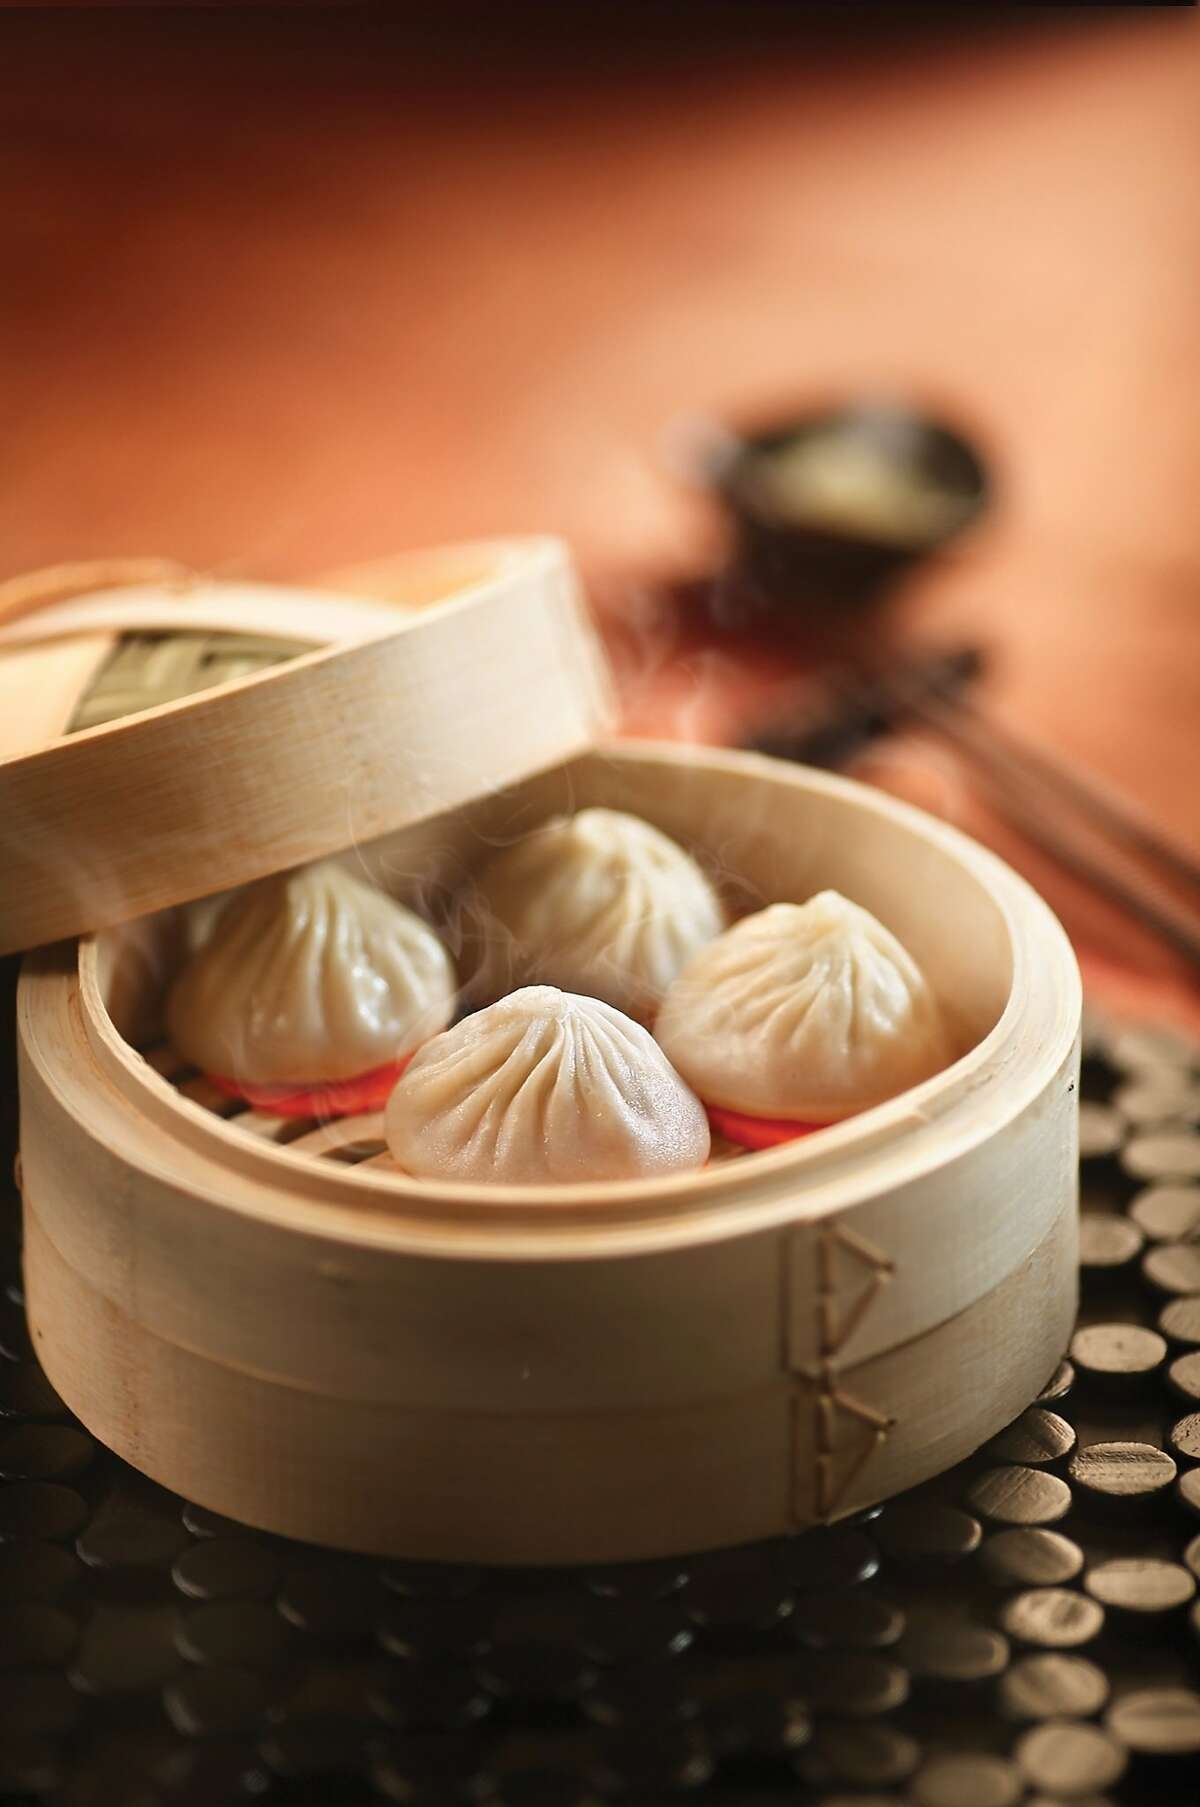 Crystal Jade's Xiao Long Bao